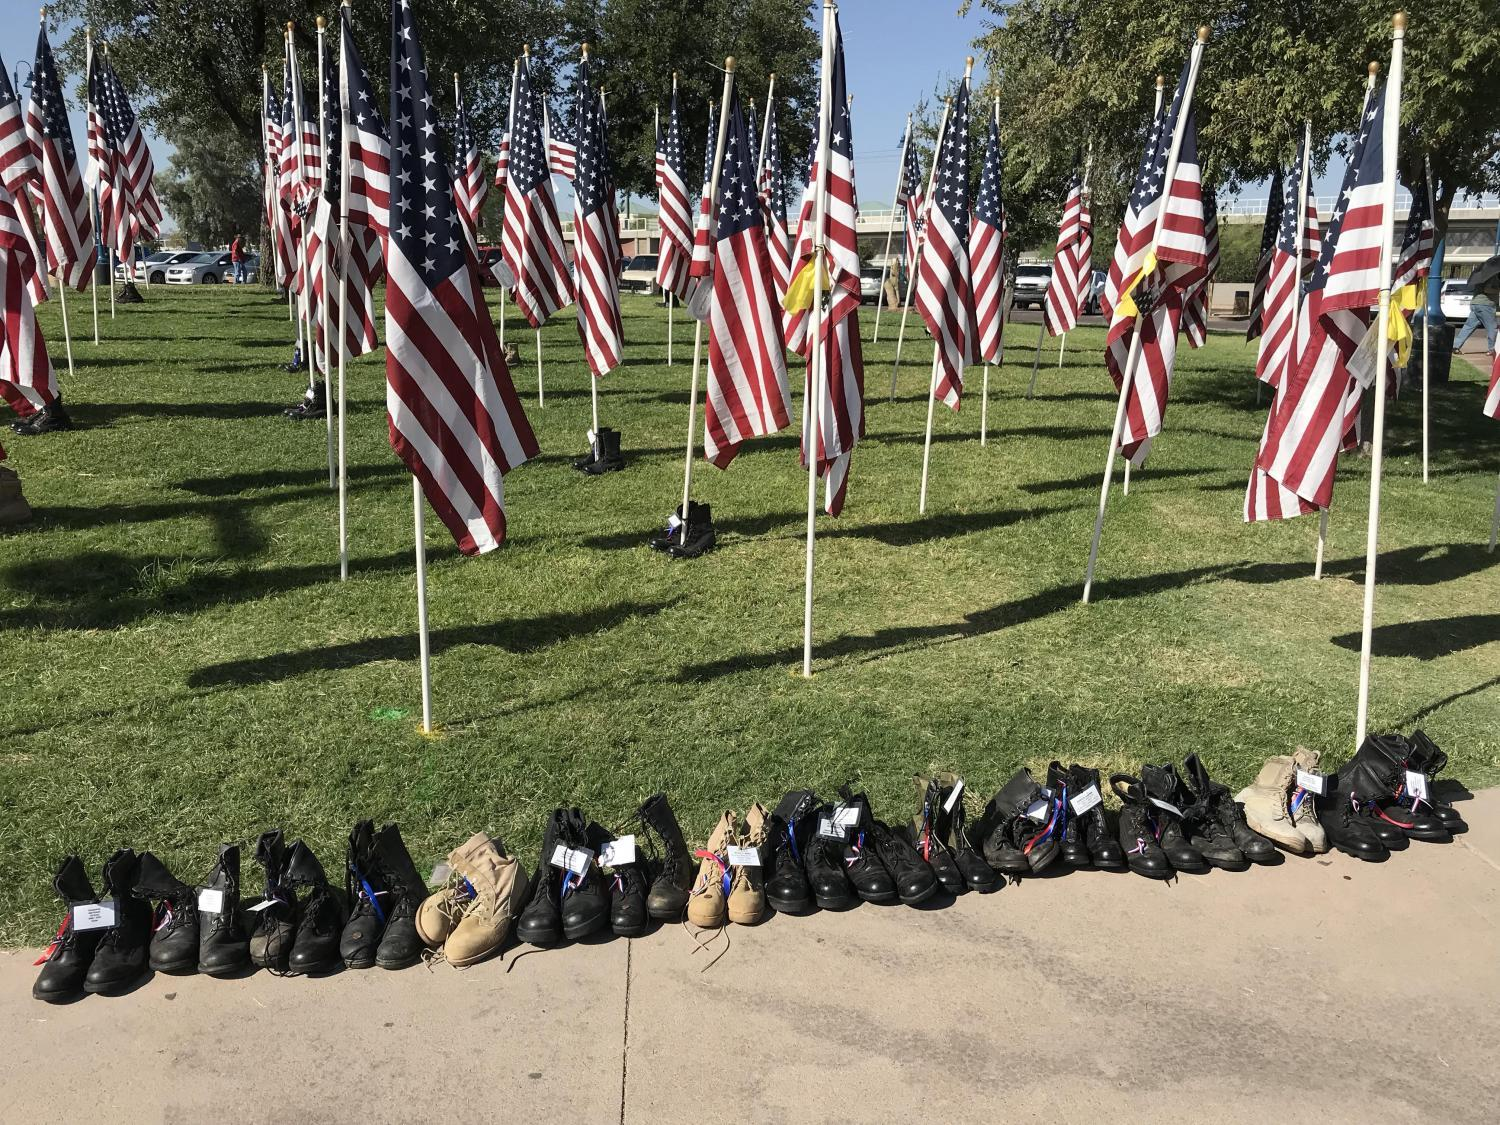 Flags displayed at Tempe Healing Field for 9/11 memorial with an accompanying pair of boots.